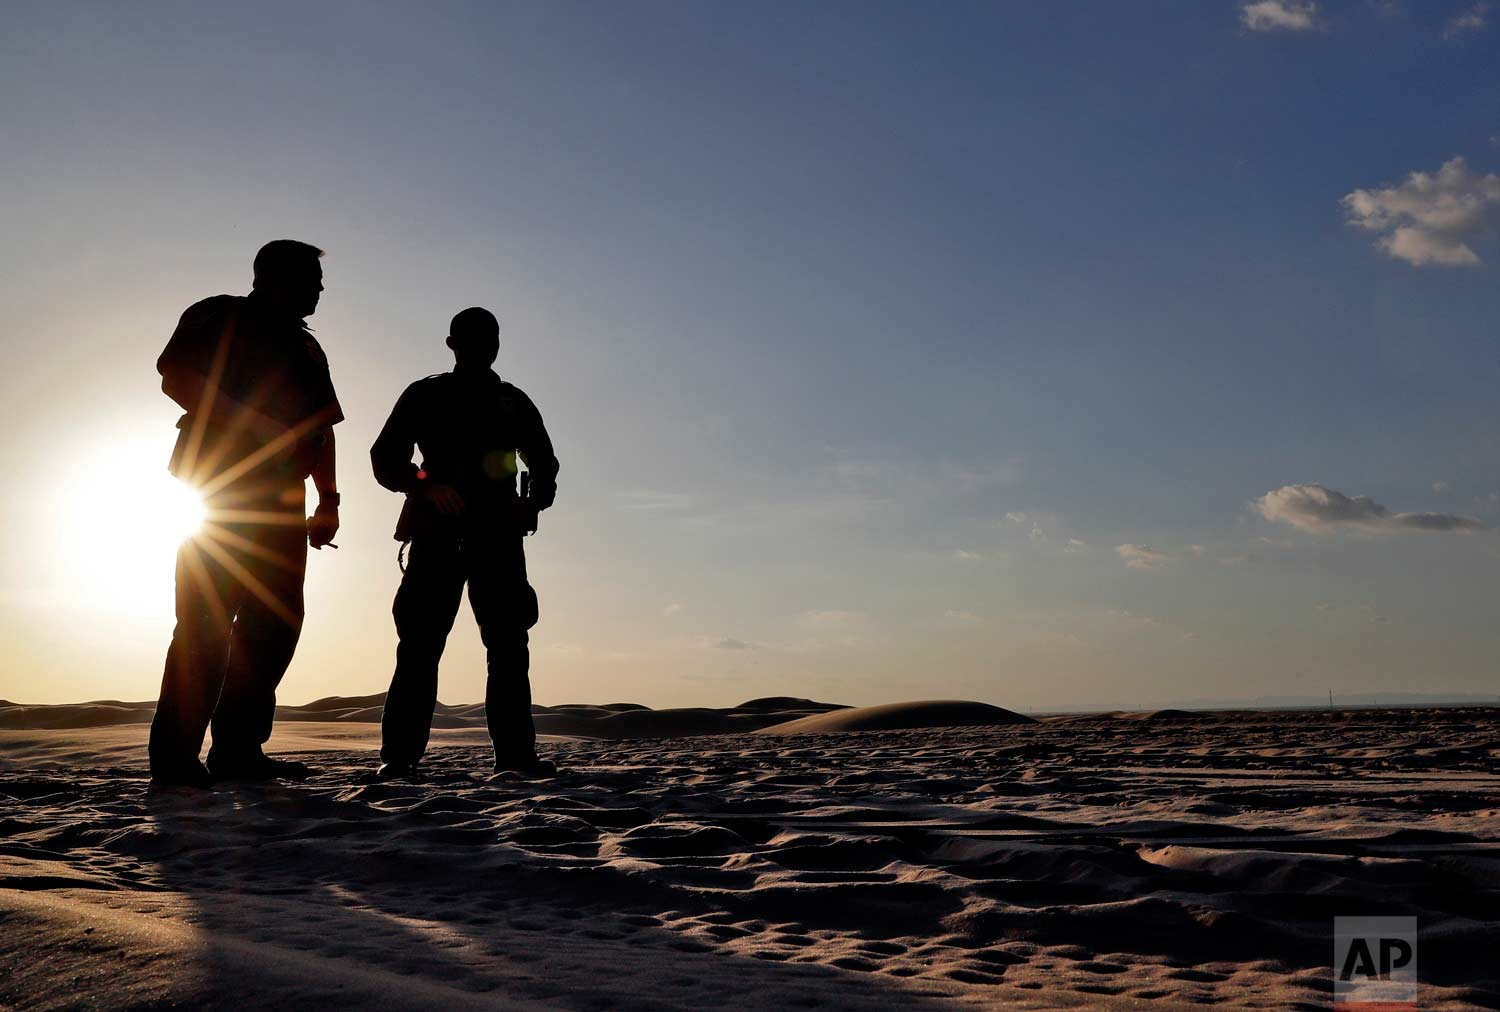 A pair of U.S. Customs and Border Patrol agents look at tracks in the sand along the floating fence that makes up the international border with Mexico, Wednesday, July 18, 2018 in Imperial County, Calif. (AP Photo/Matt York)